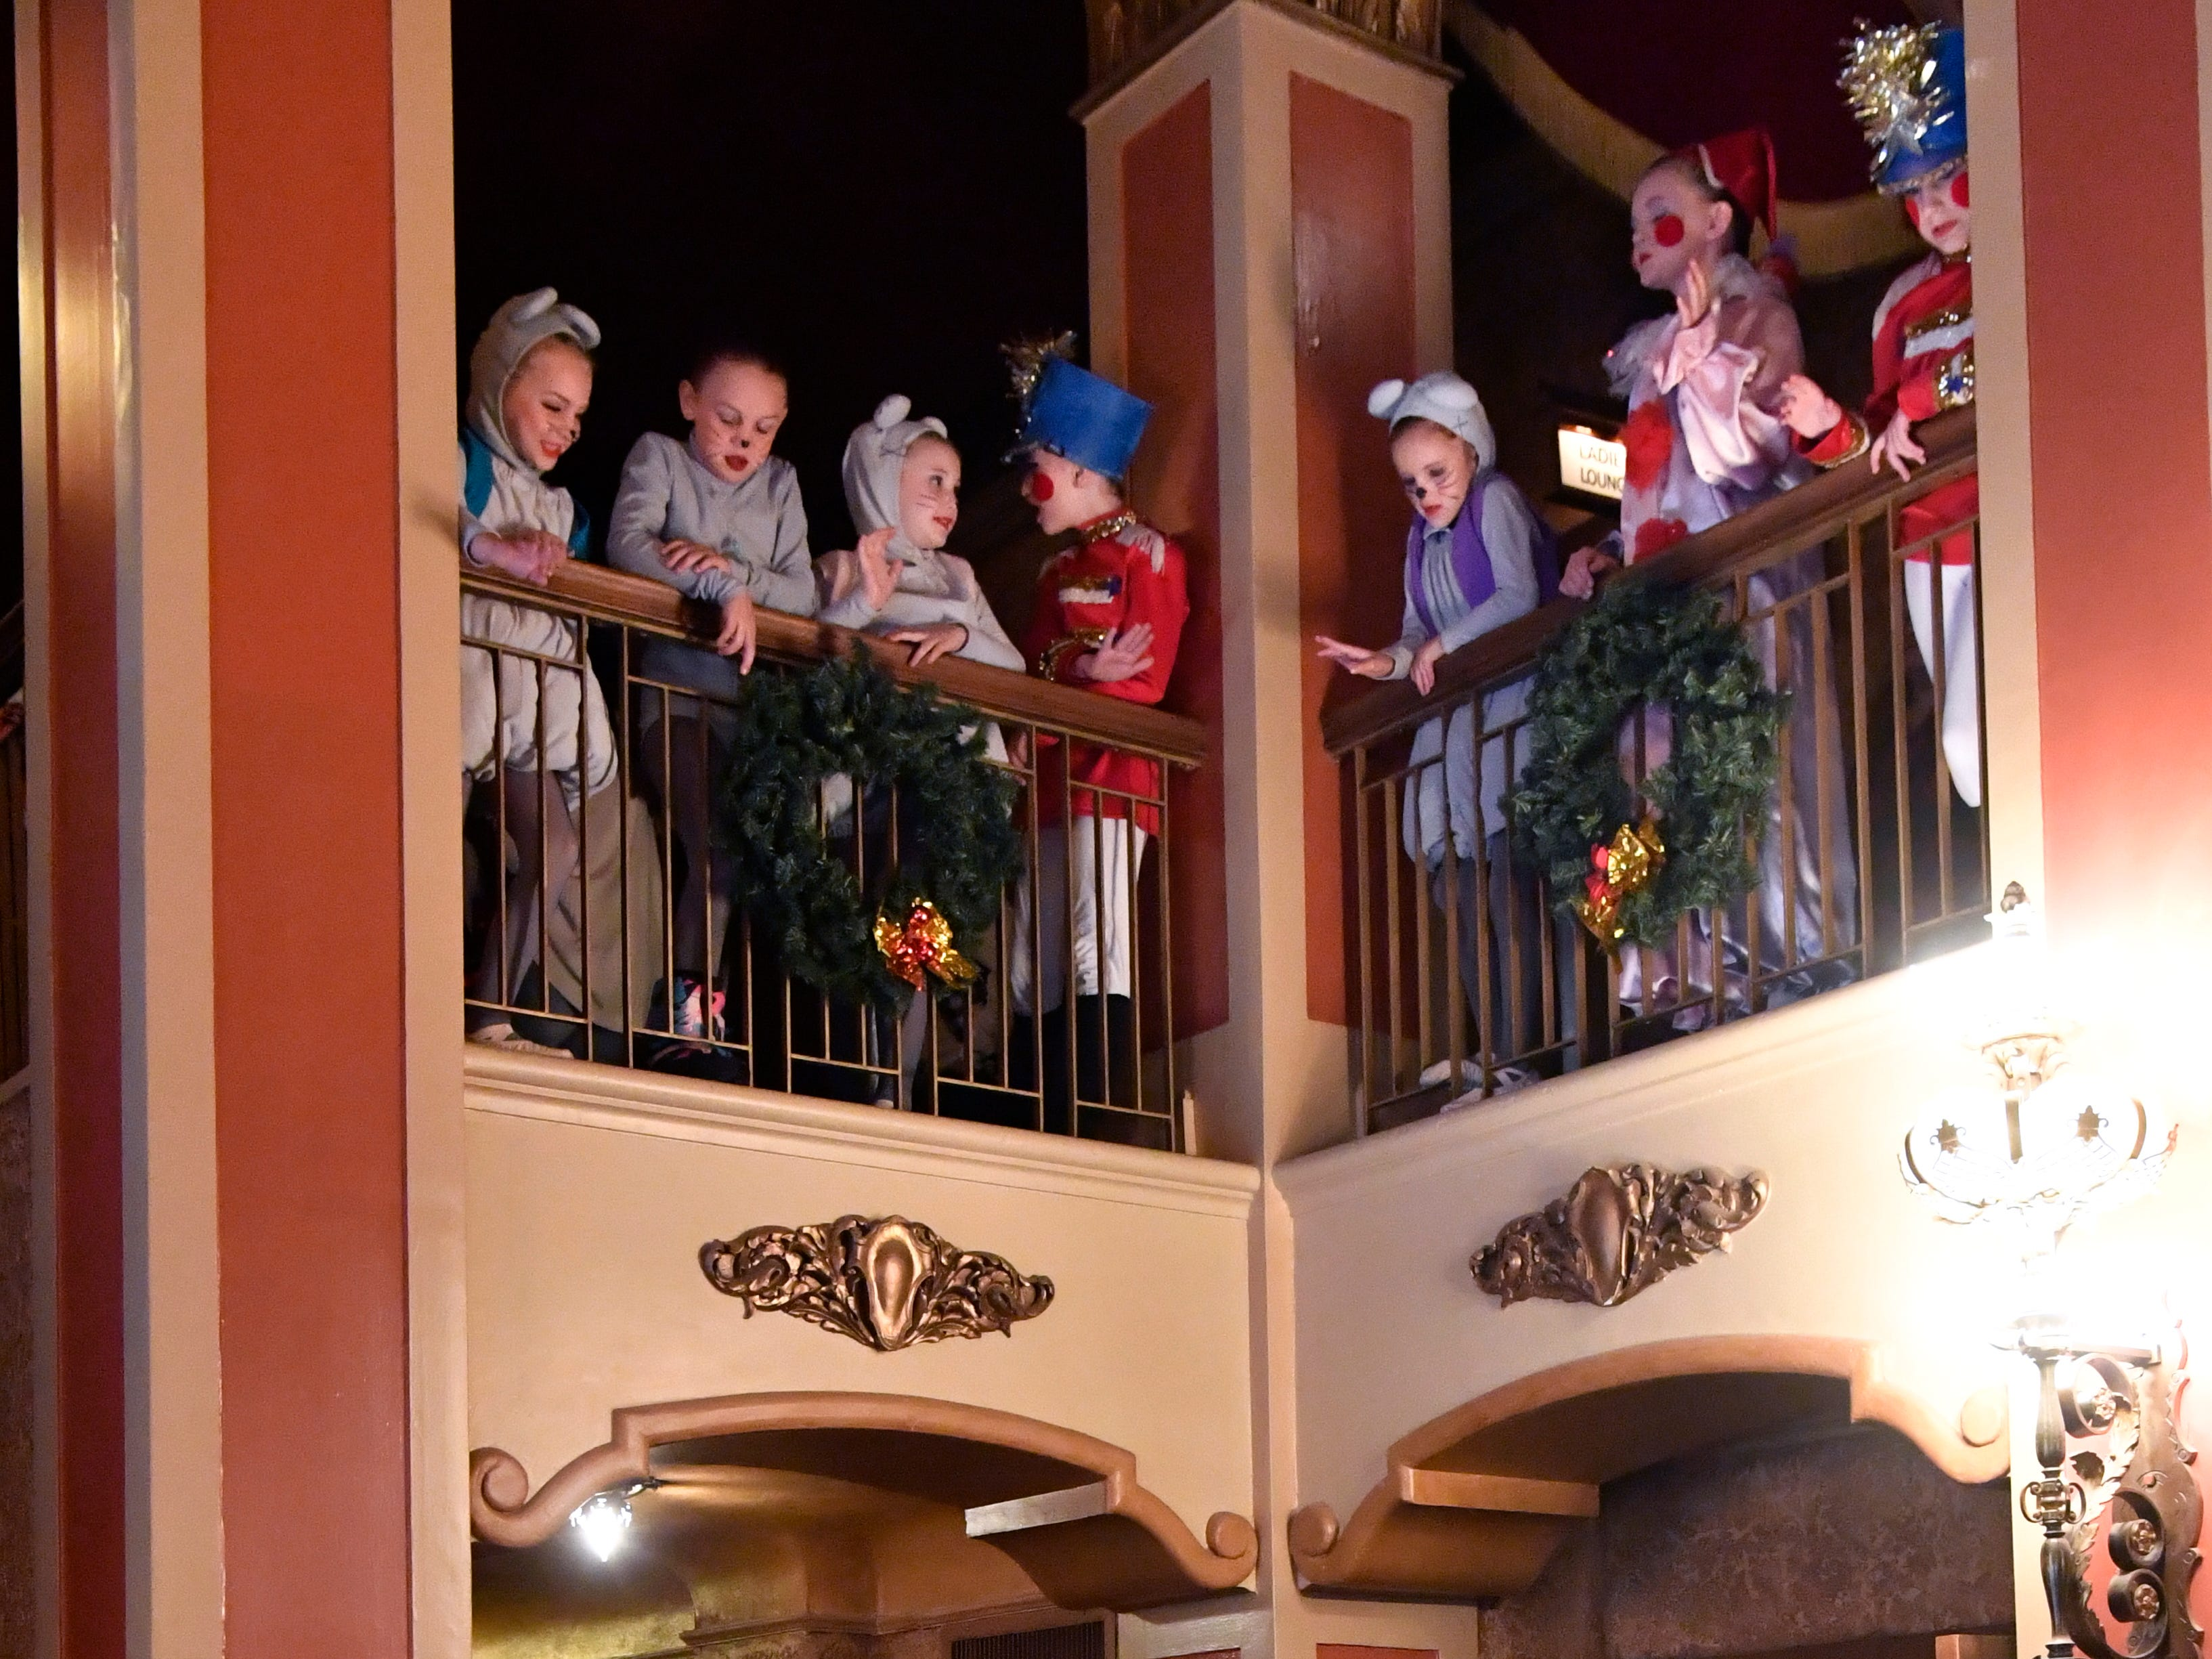 Cast members of The Nutcracker wave to audience members as they depart after Friday's show for schoolchildren Nov. 16, 2018. This was the 31st year for the Abilene Ballet Theatre production, held at the Paramount Theatre.